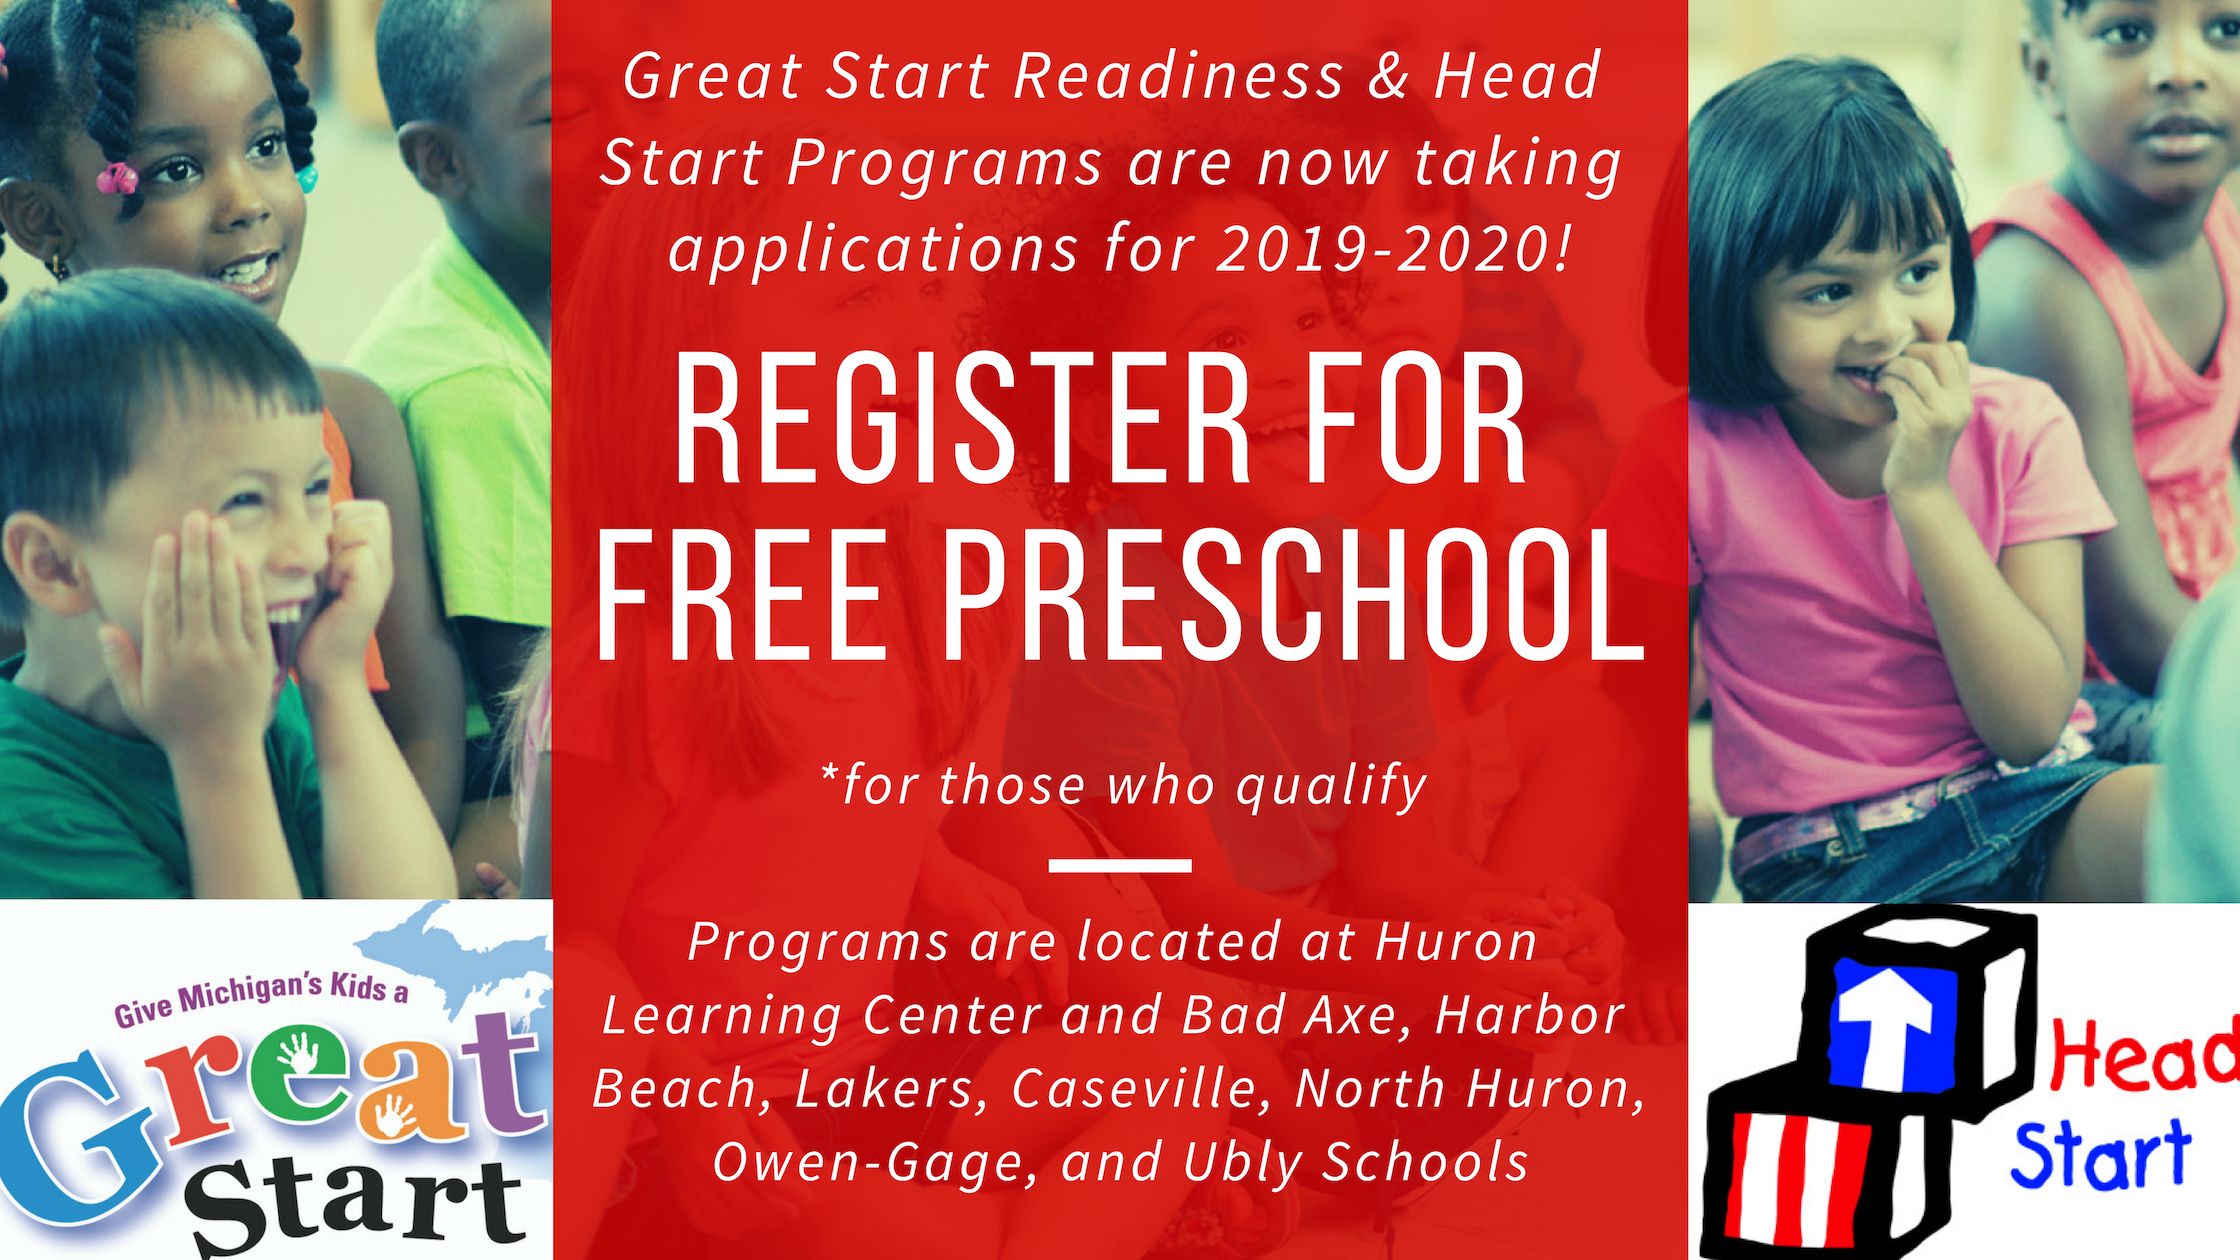 Register for free Preschool